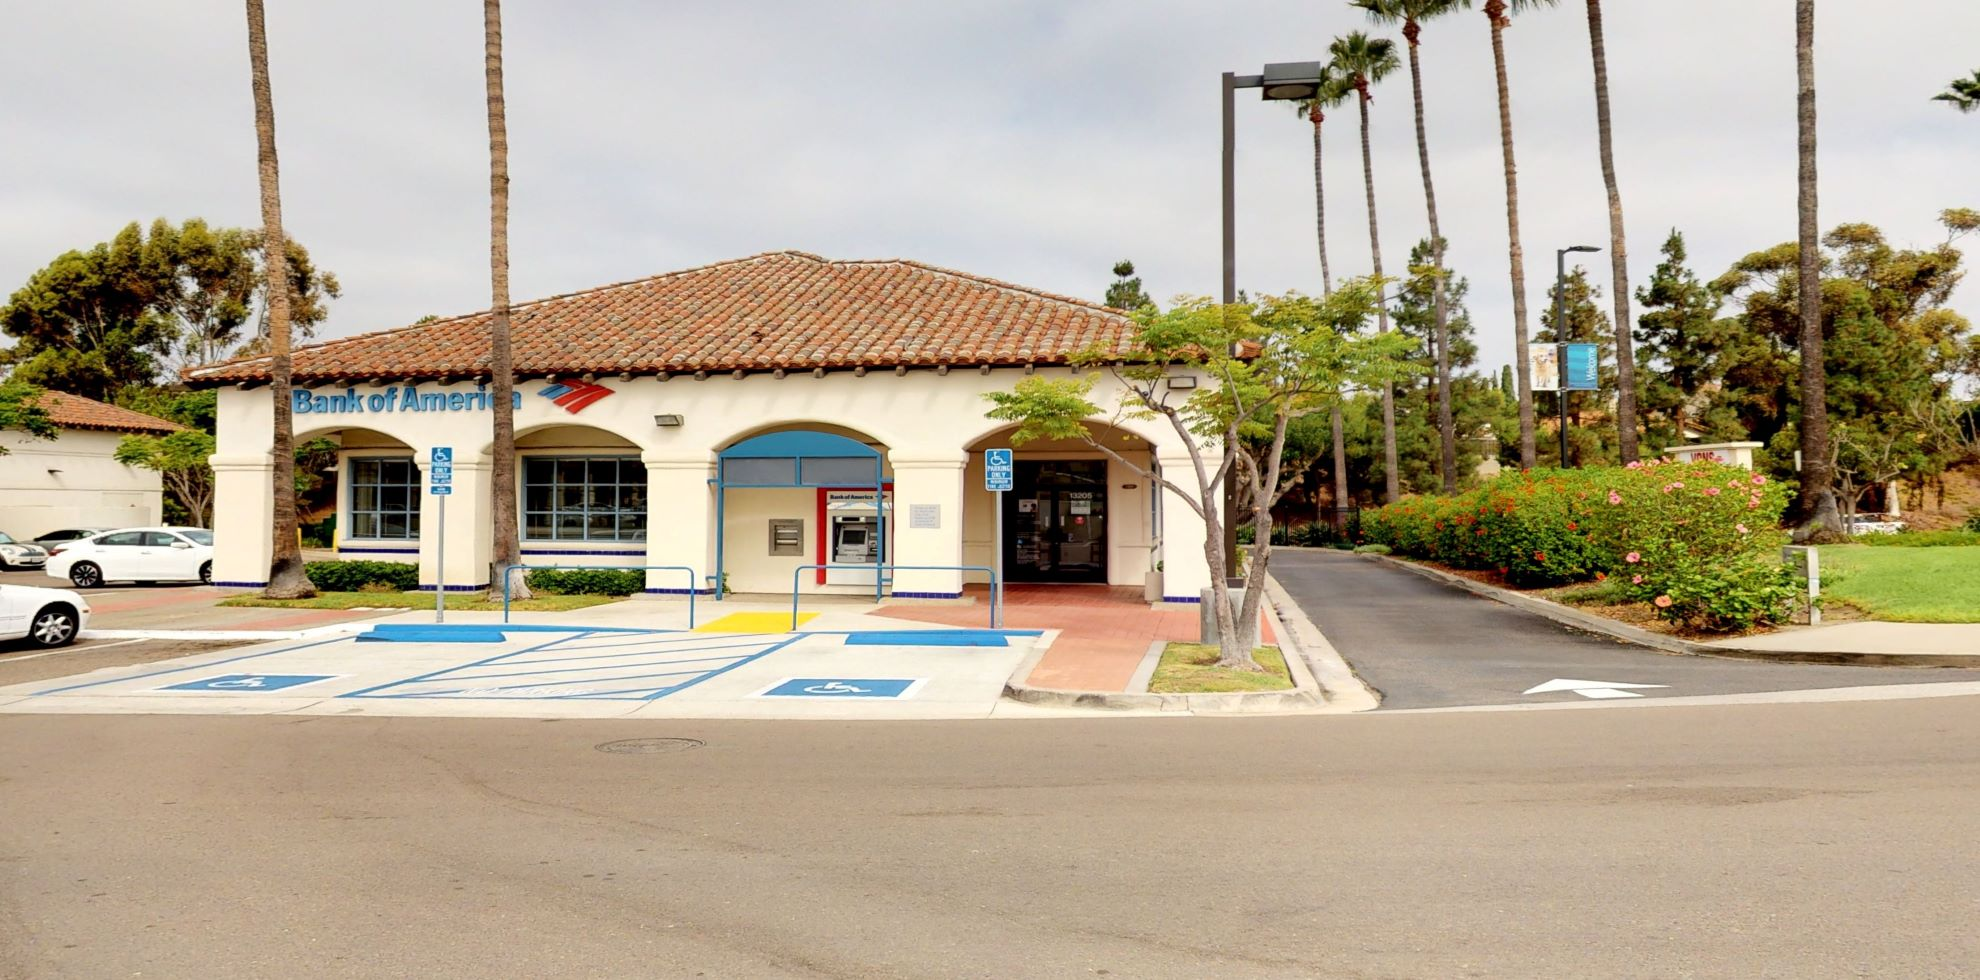 Bank of America financial center with drive-thru ATM   13205 Black Mountain Rd, San Diego, CA 92129